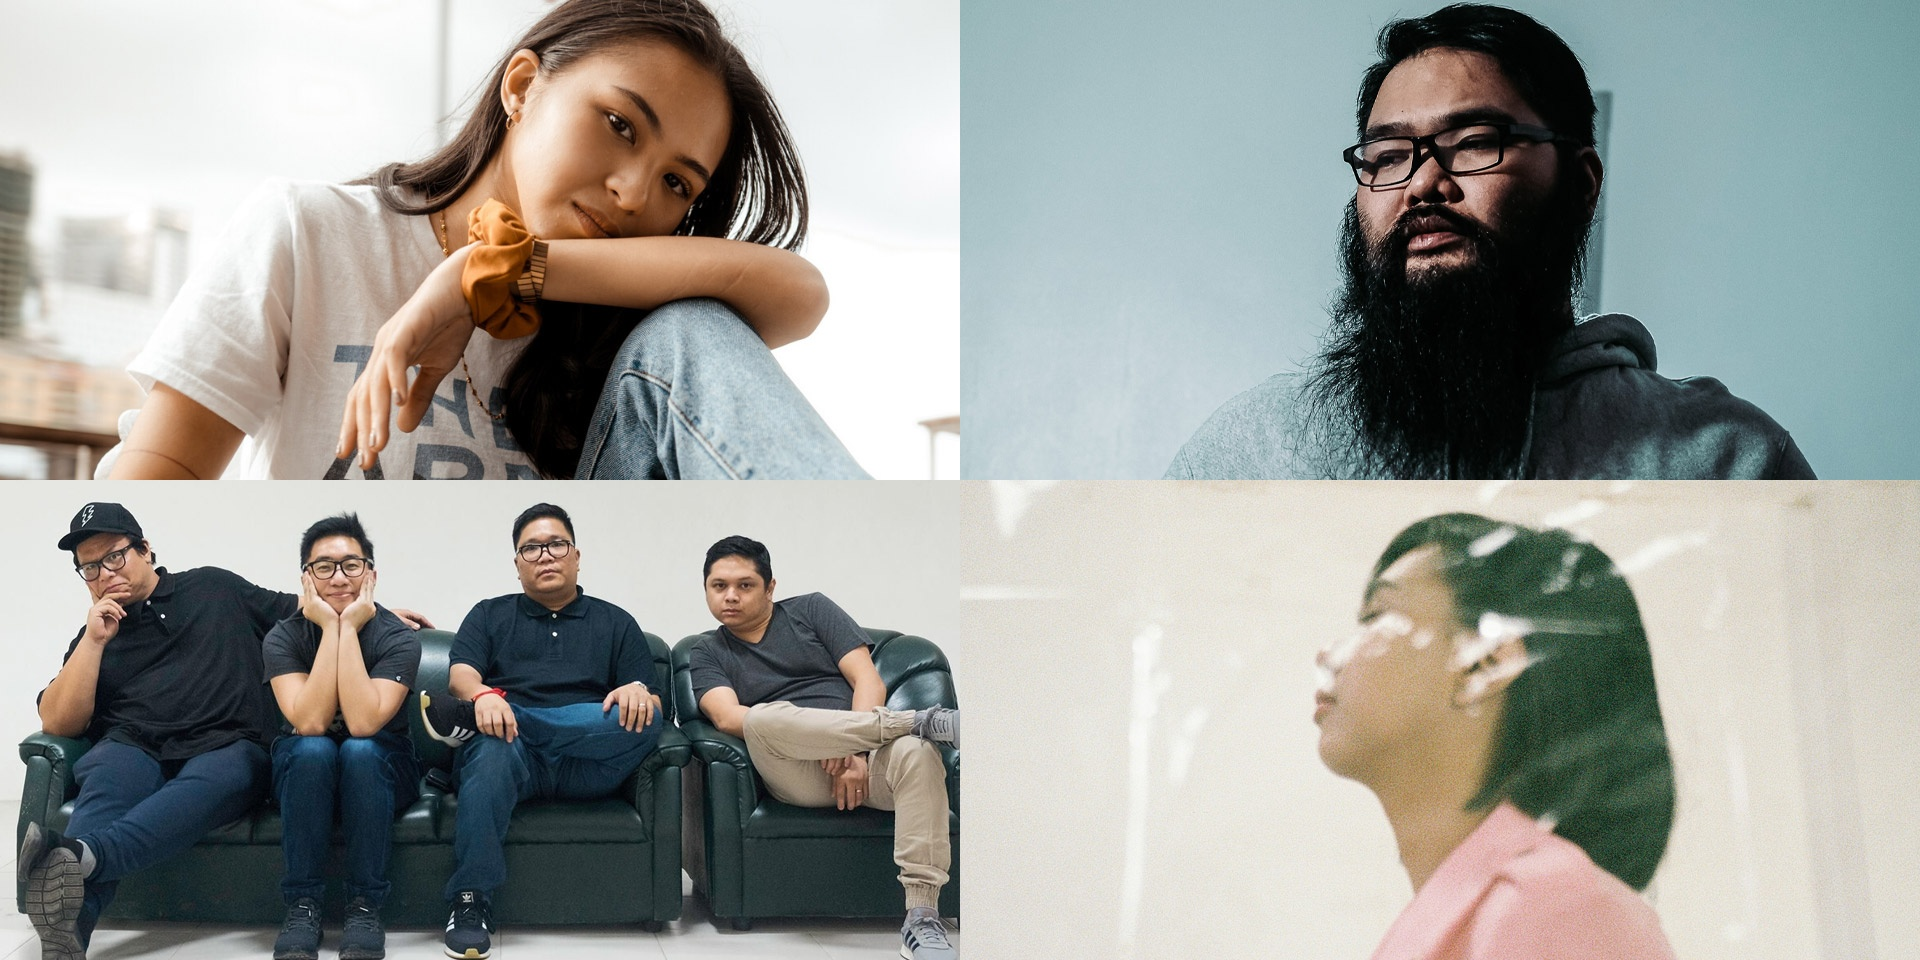 Asch and Clara Benin, The Itchyworms and The CompanY, I Belong to the Zoo, and more release new music – listen